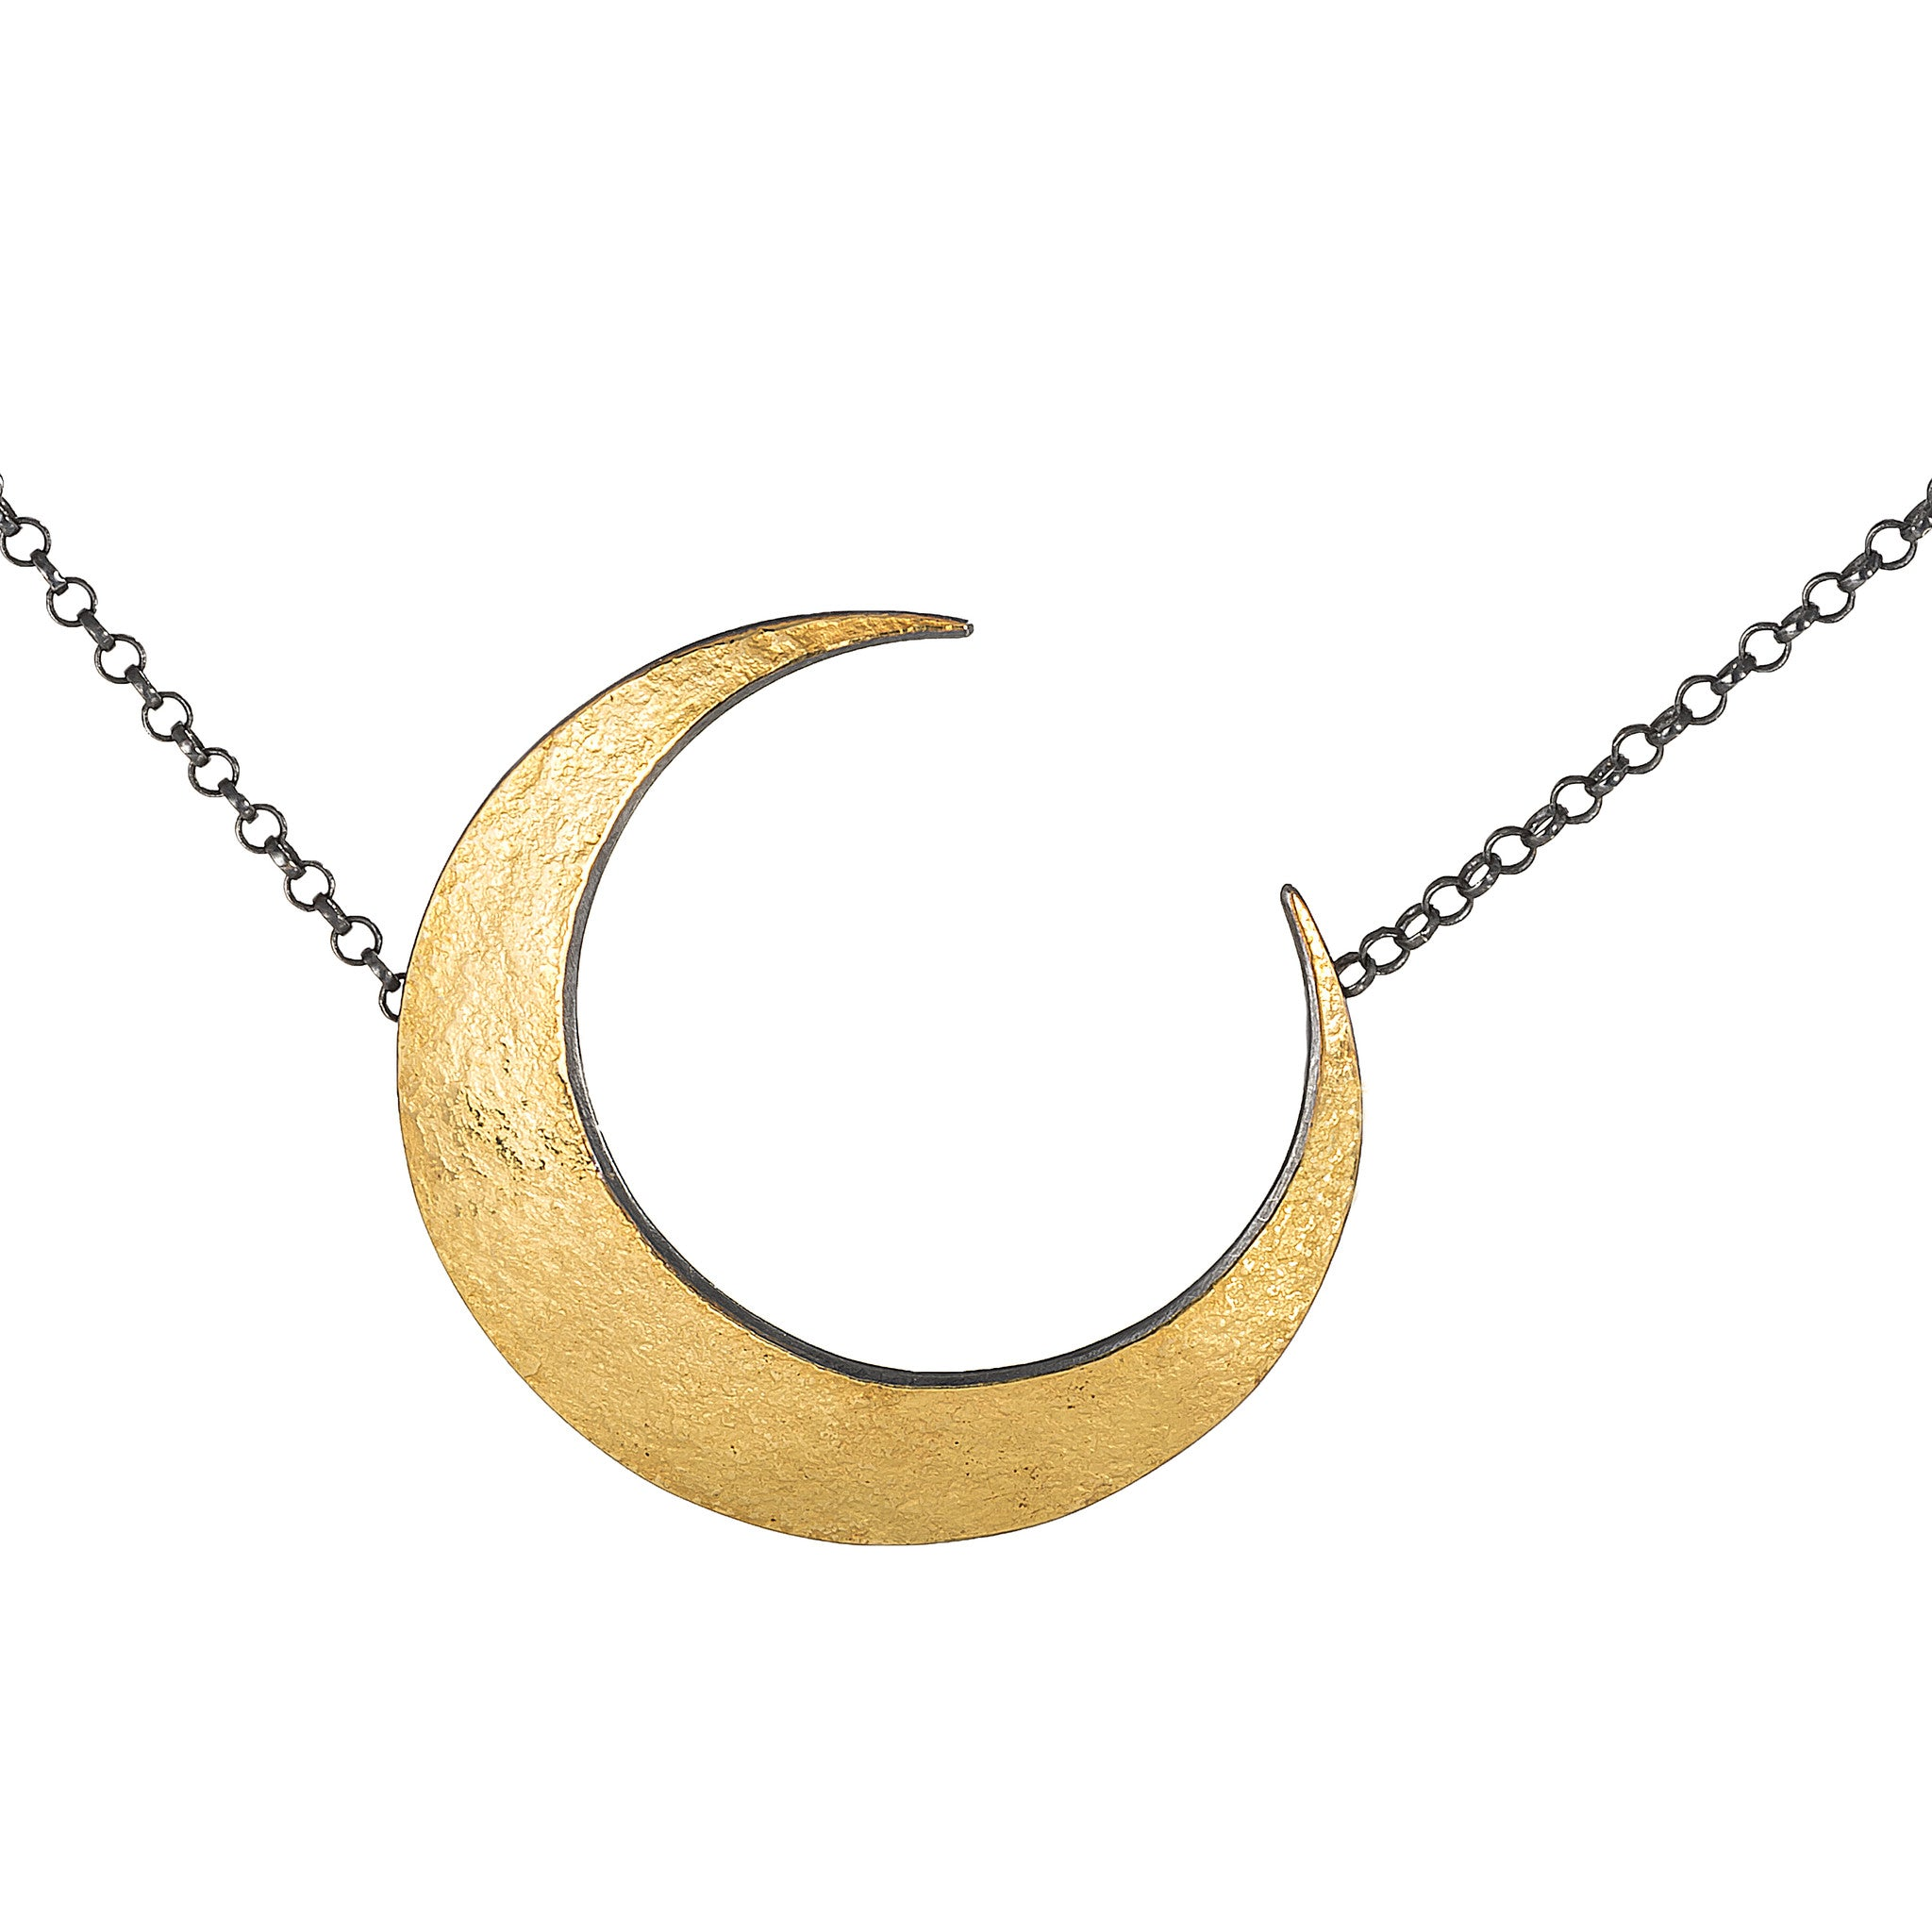 Crescent Moon Necklace - Gold and Sterling Silver